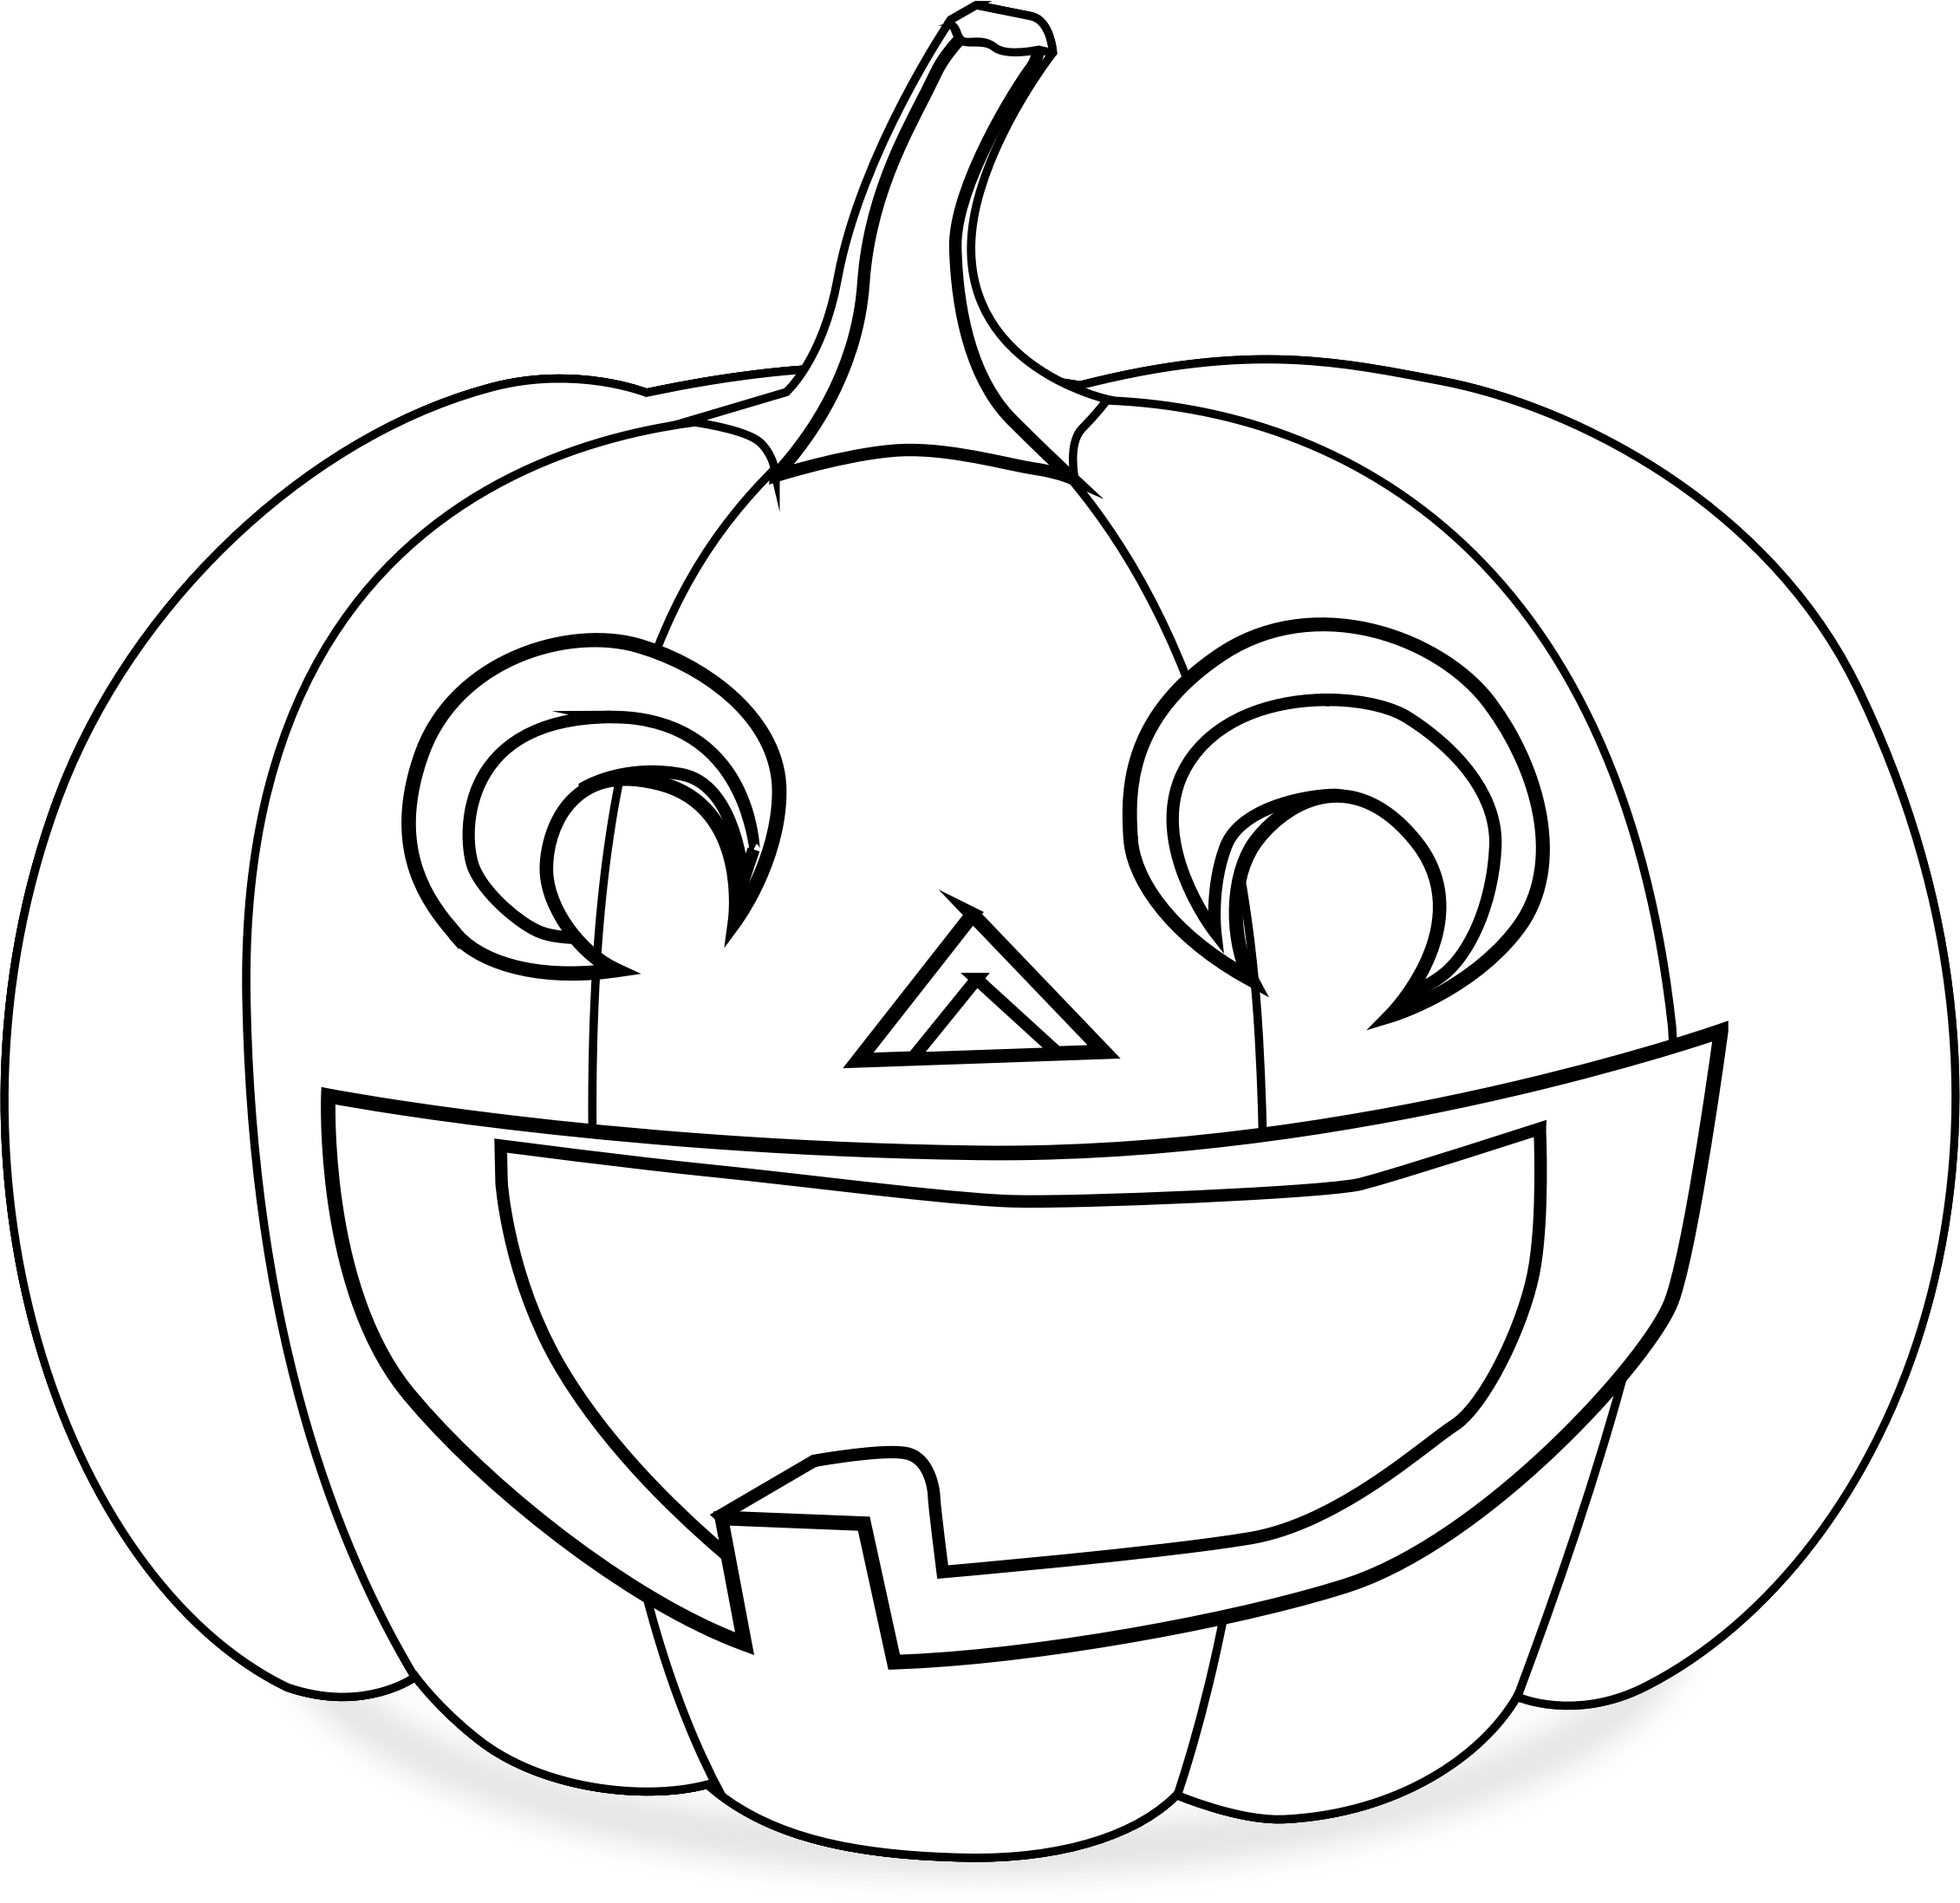 Coloring page pumpkin clipart vector free library Clipart - Pumpkin Coloring Page vector free library